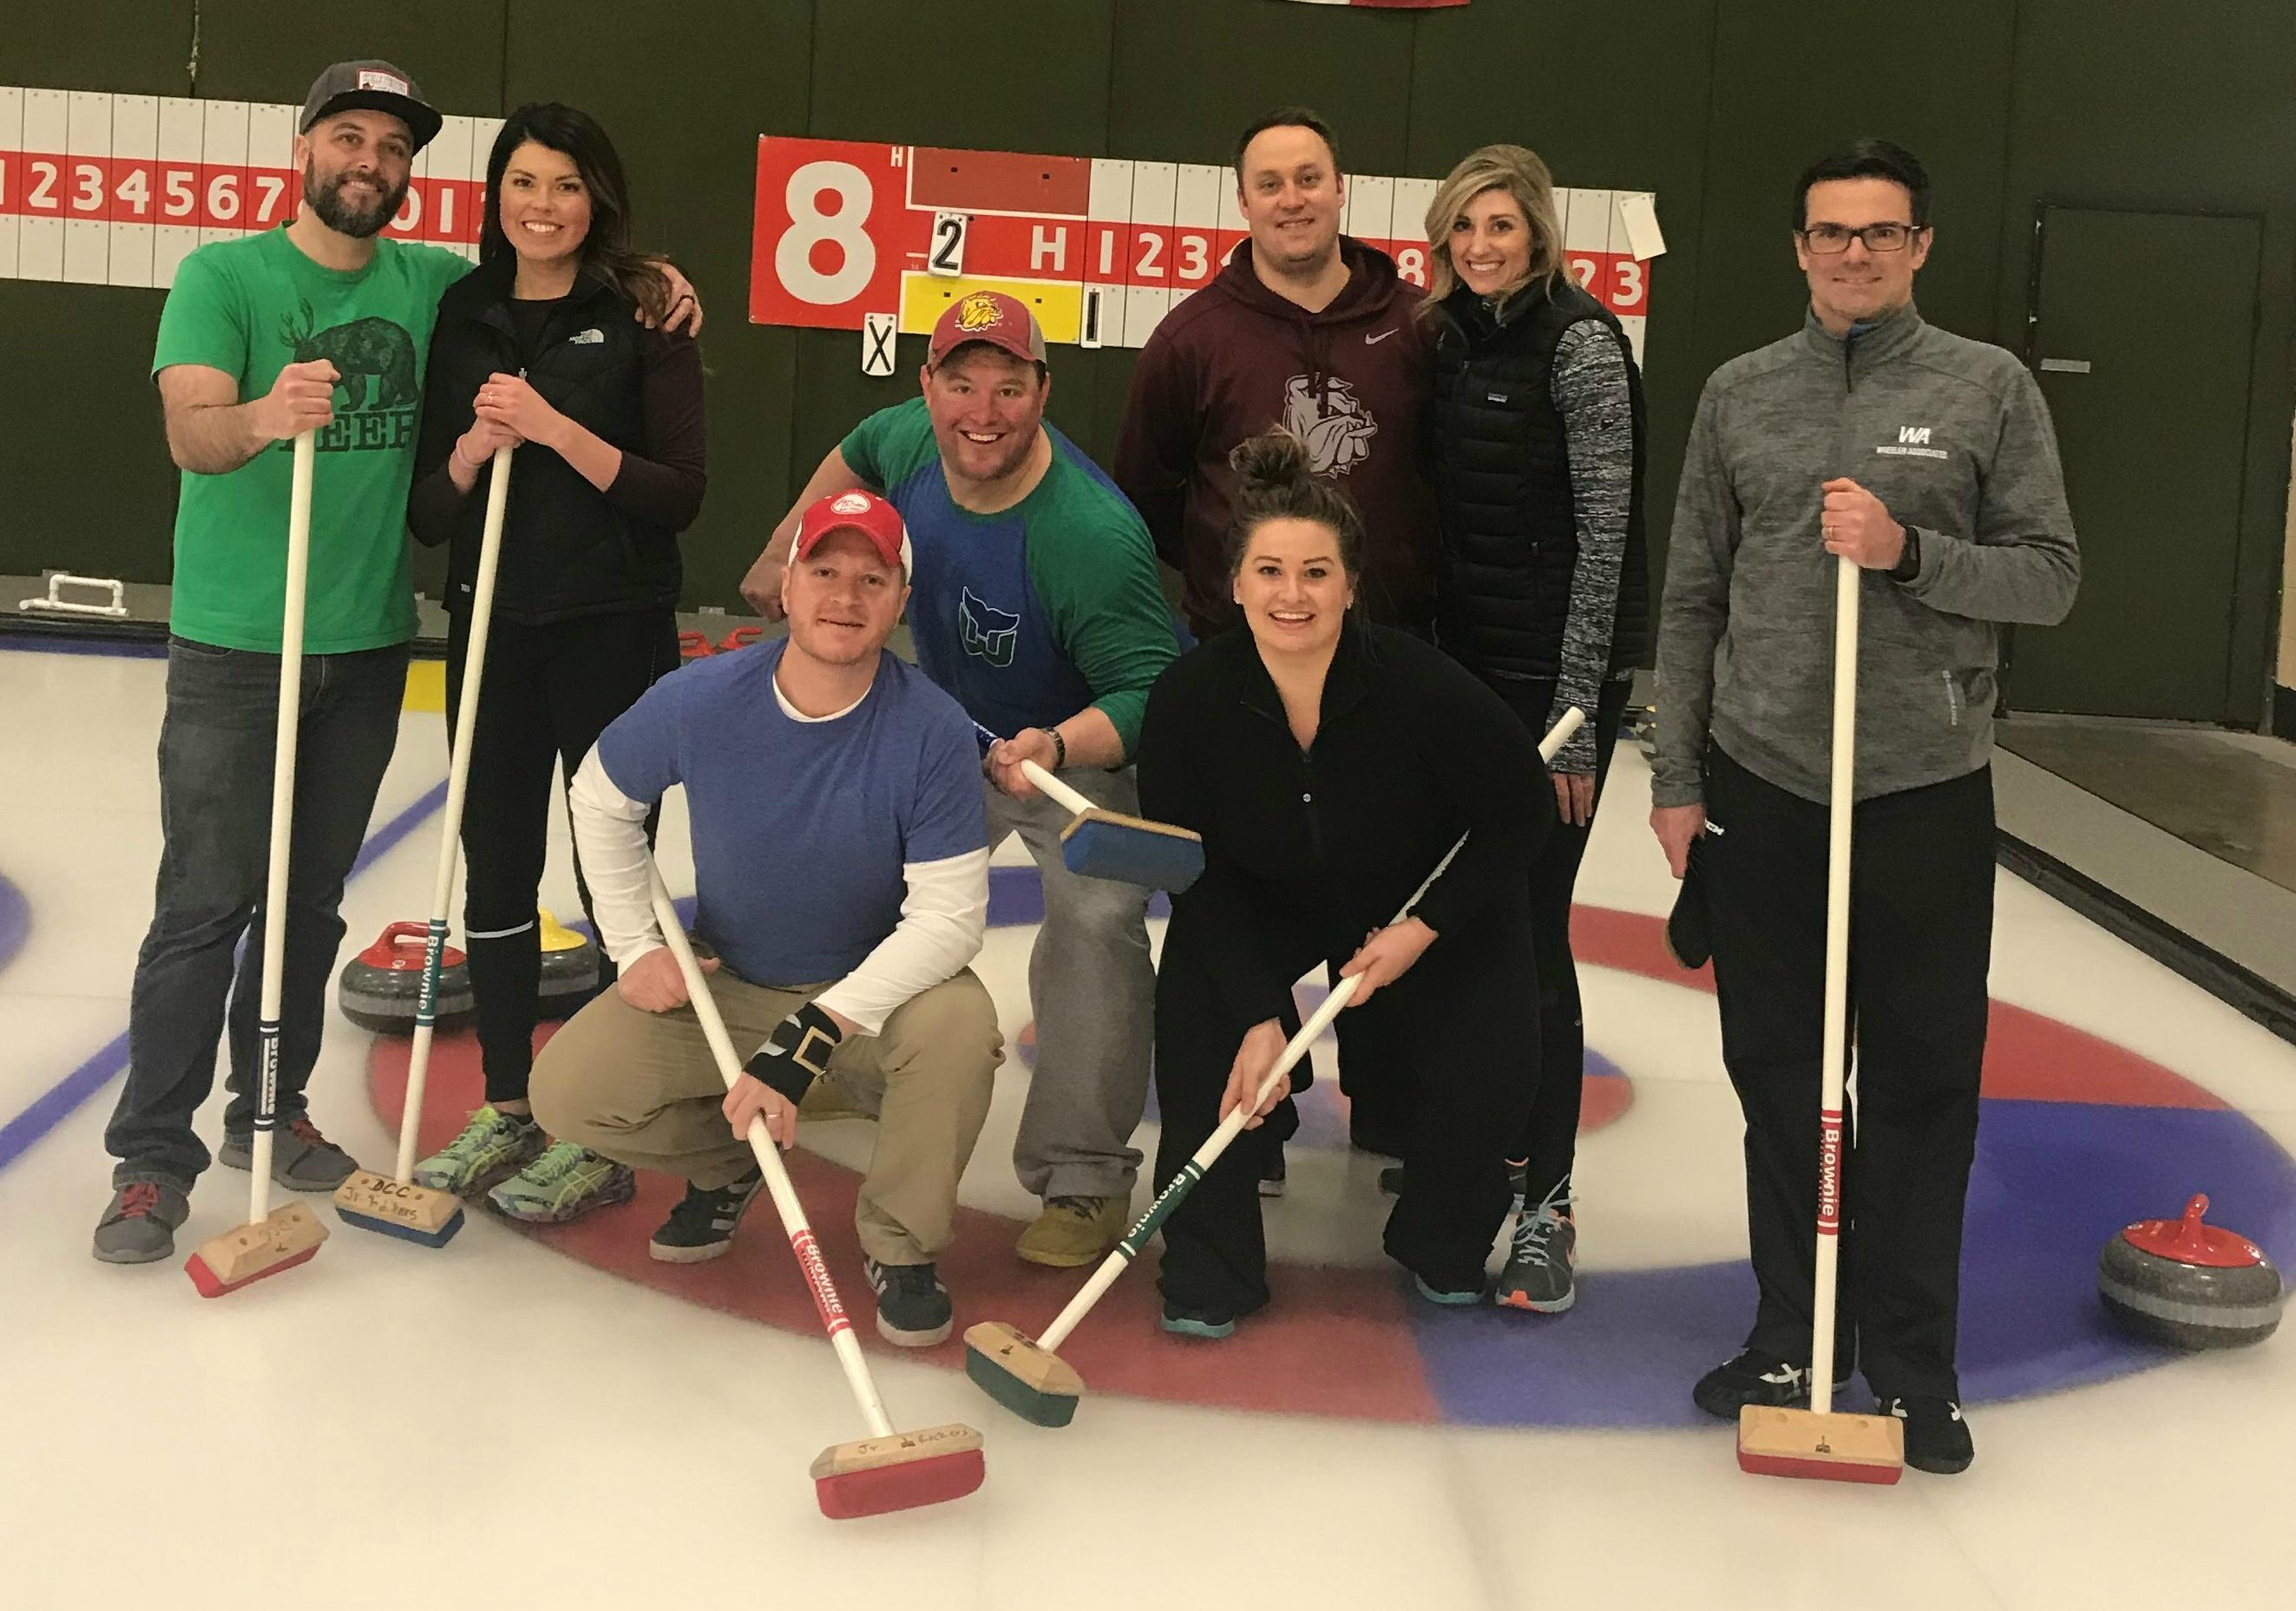 2018 Curling Group Picture